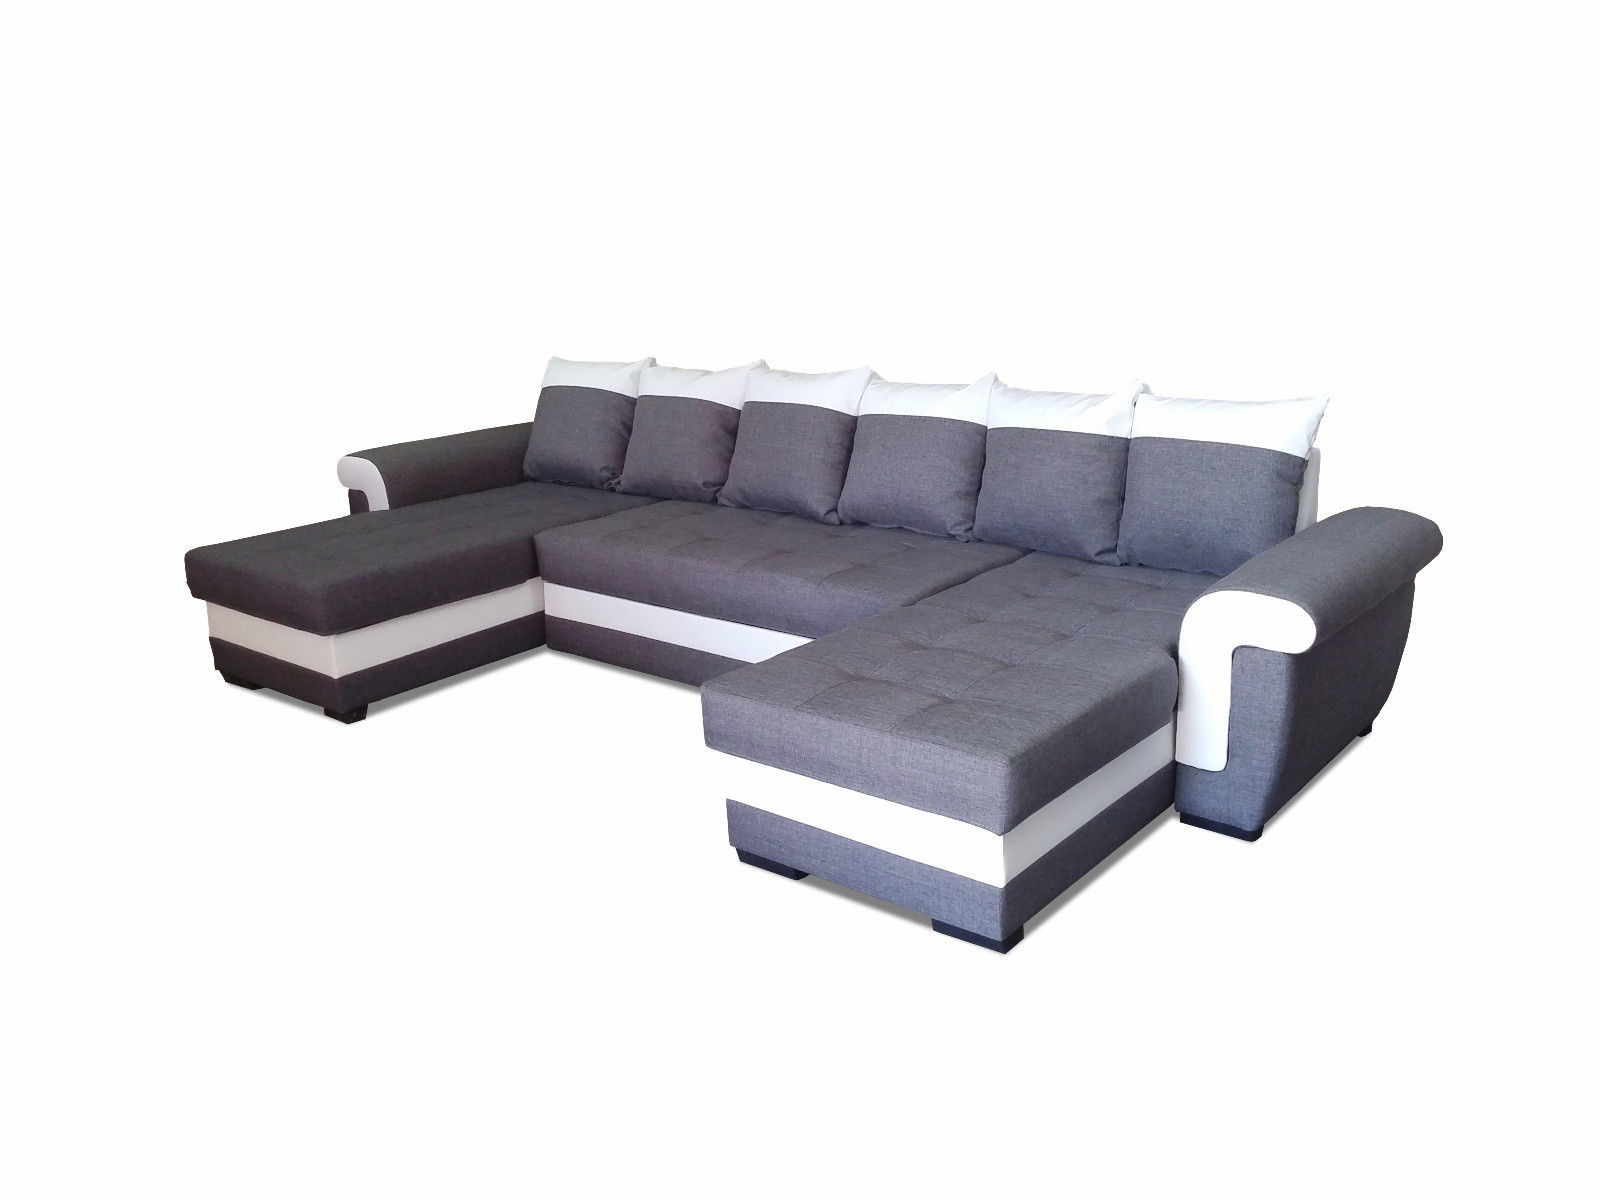 ecksofa latte u couch sofa mit schlaffunktion eckcouch sofagarnitur modern 01 ebay. Black Bedroom Furniture Sets. Home Design Ideas